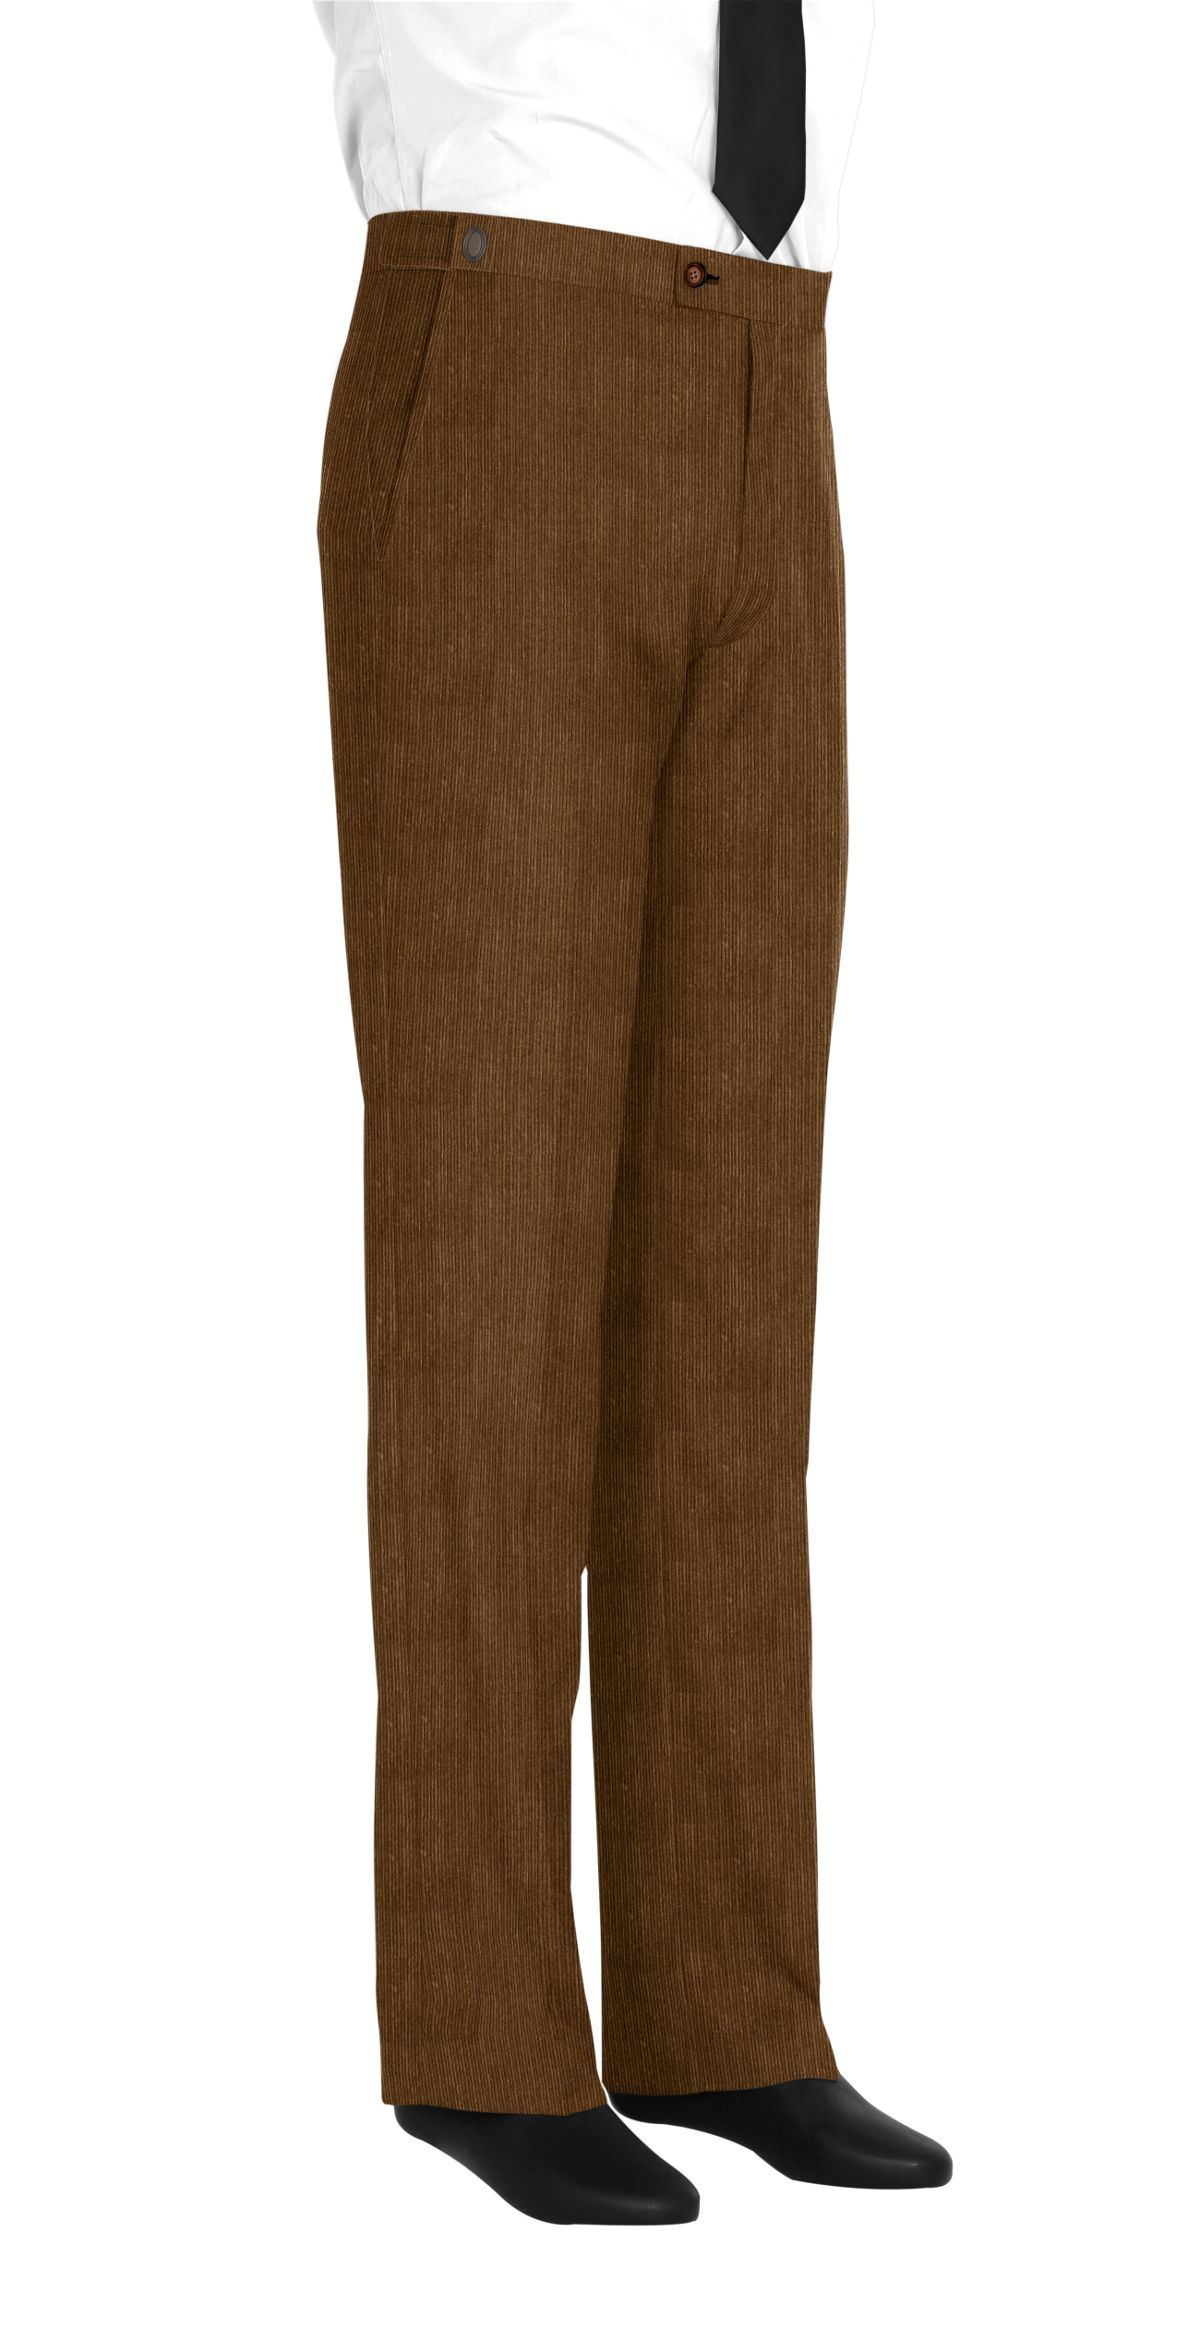 Pantalon marron velours côtelé